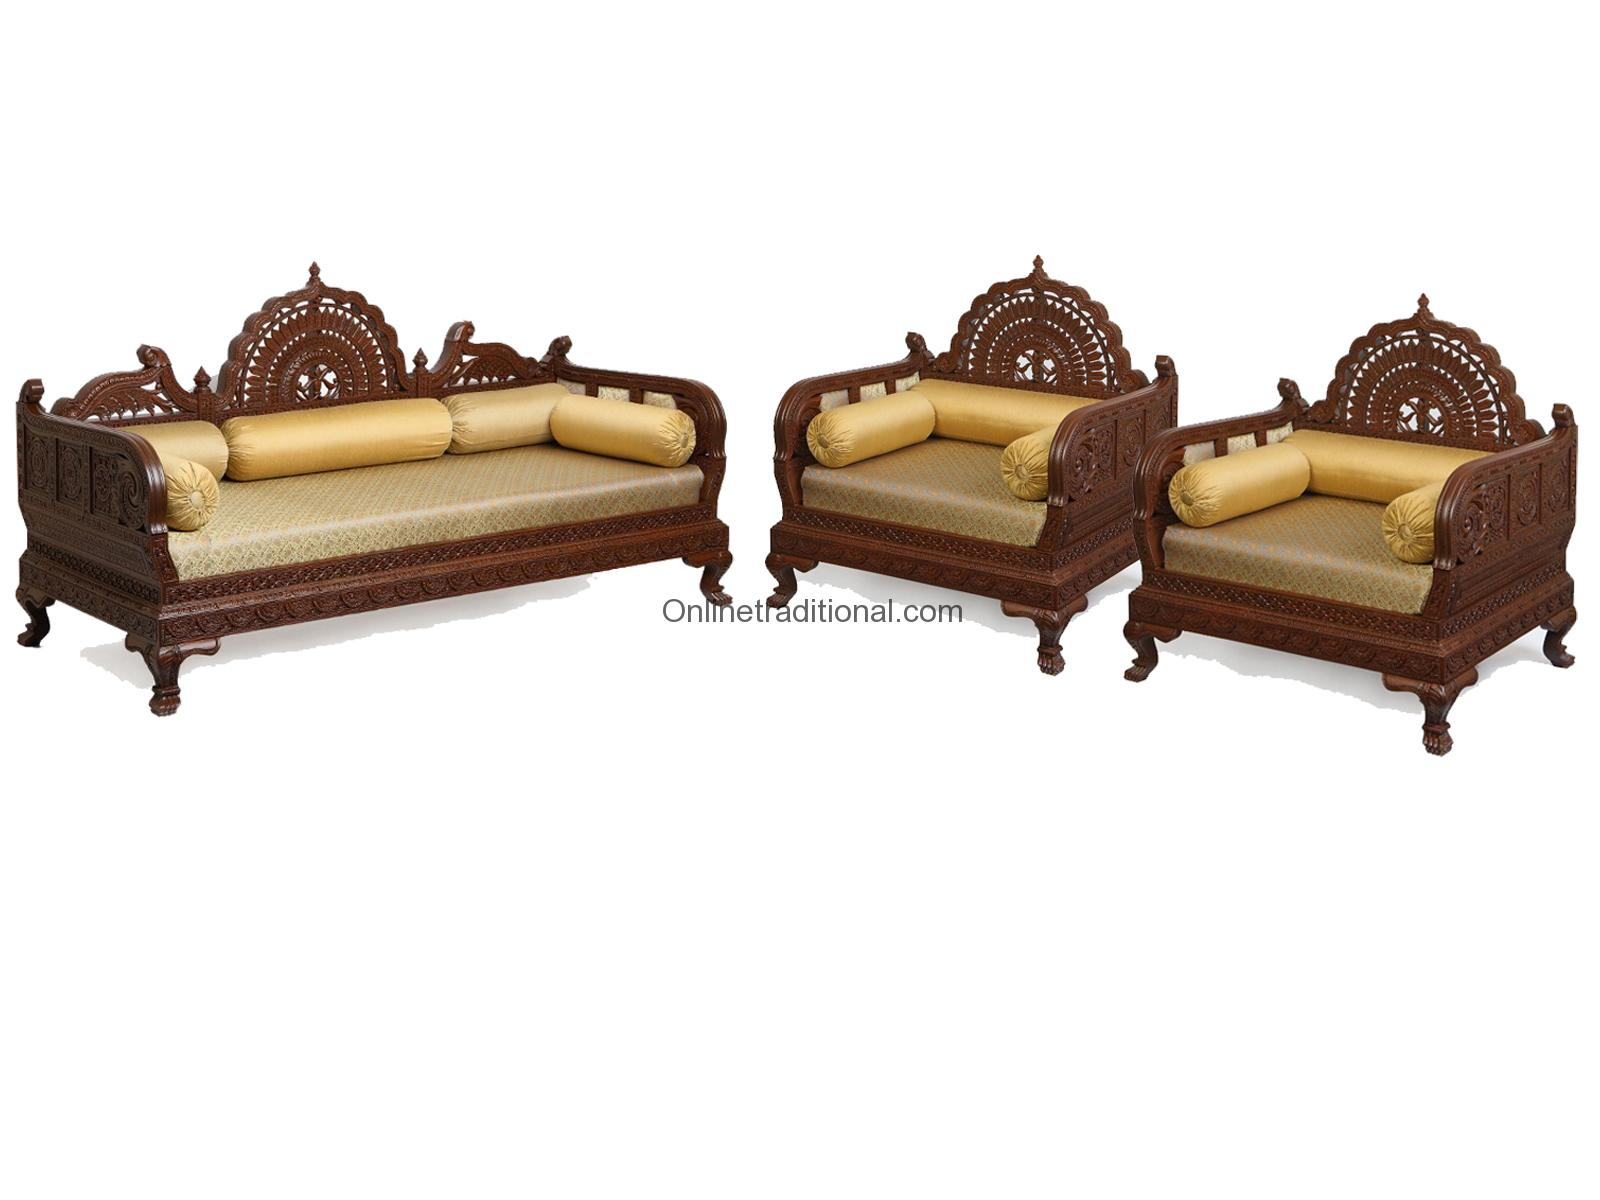 Maharaja Sofa Set Images 202 Best About Dream Home